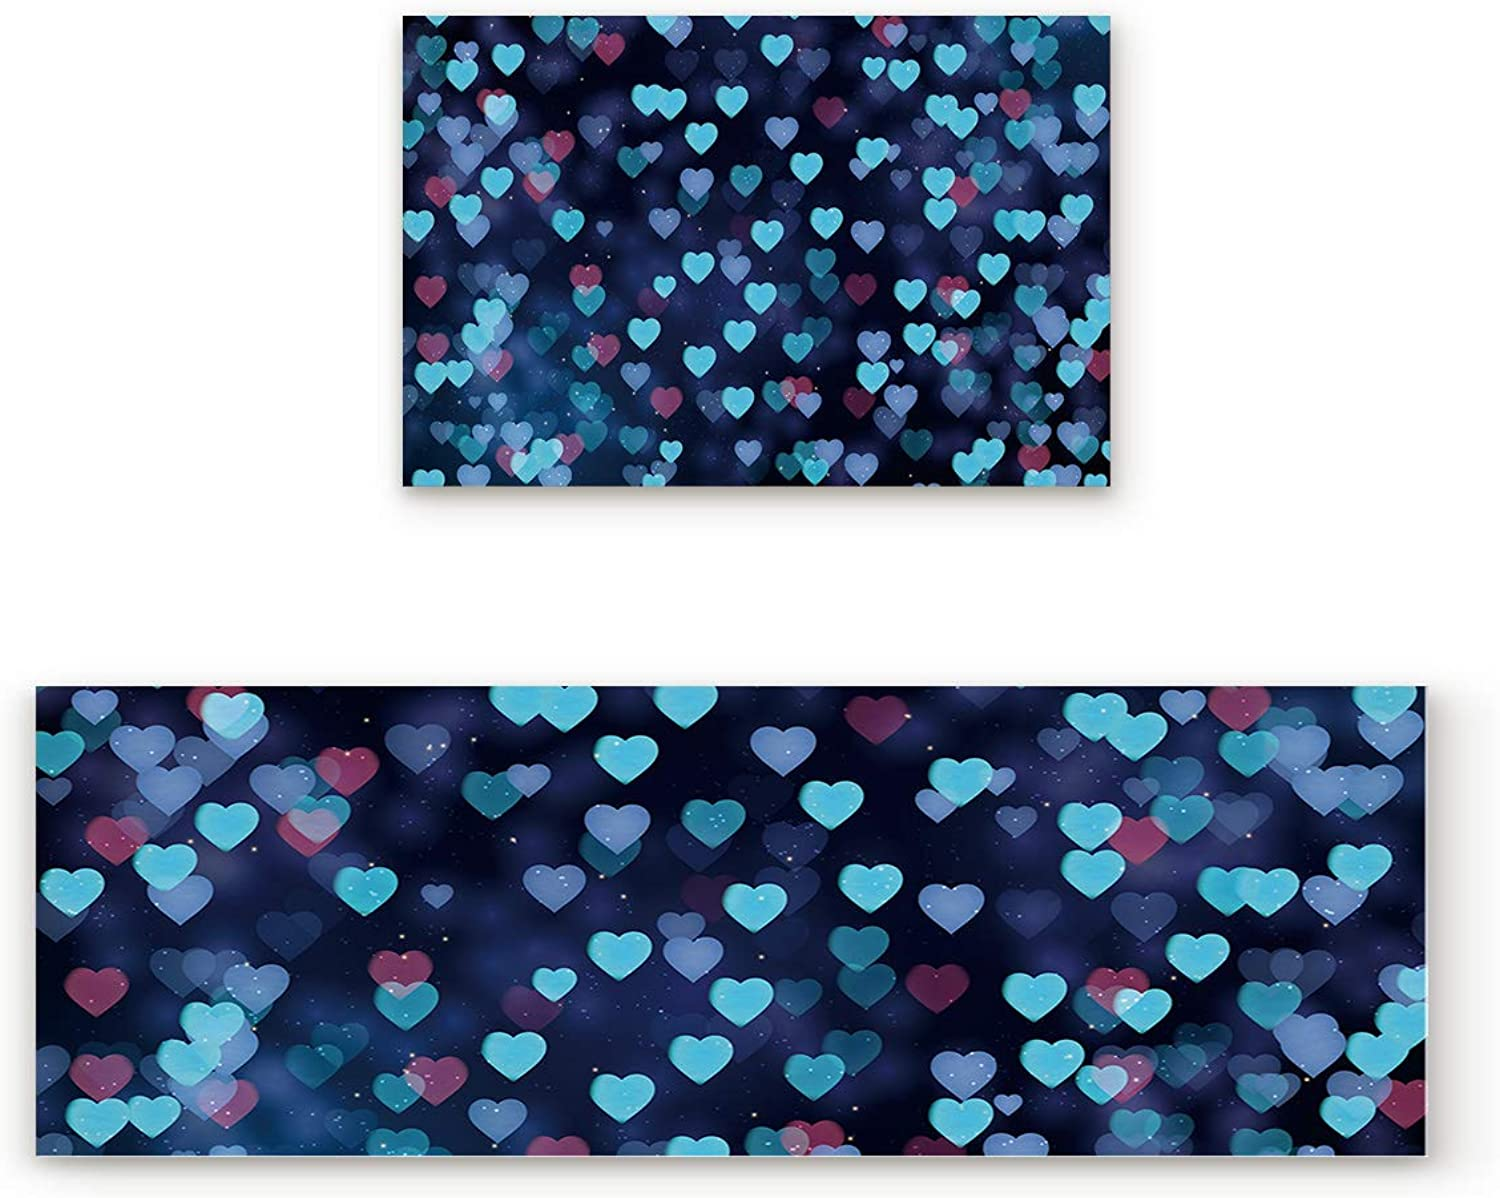 Aomike 2 Piece Non-Slip Kitchen Mat Rubber Backing Doormat Romantic bluee Hearts Valentine's Day Runner Rug Set, Hallway Living Room Balcony Bathroom Carpet Sets (19.7  x 31.5 +19.7  x 63 )